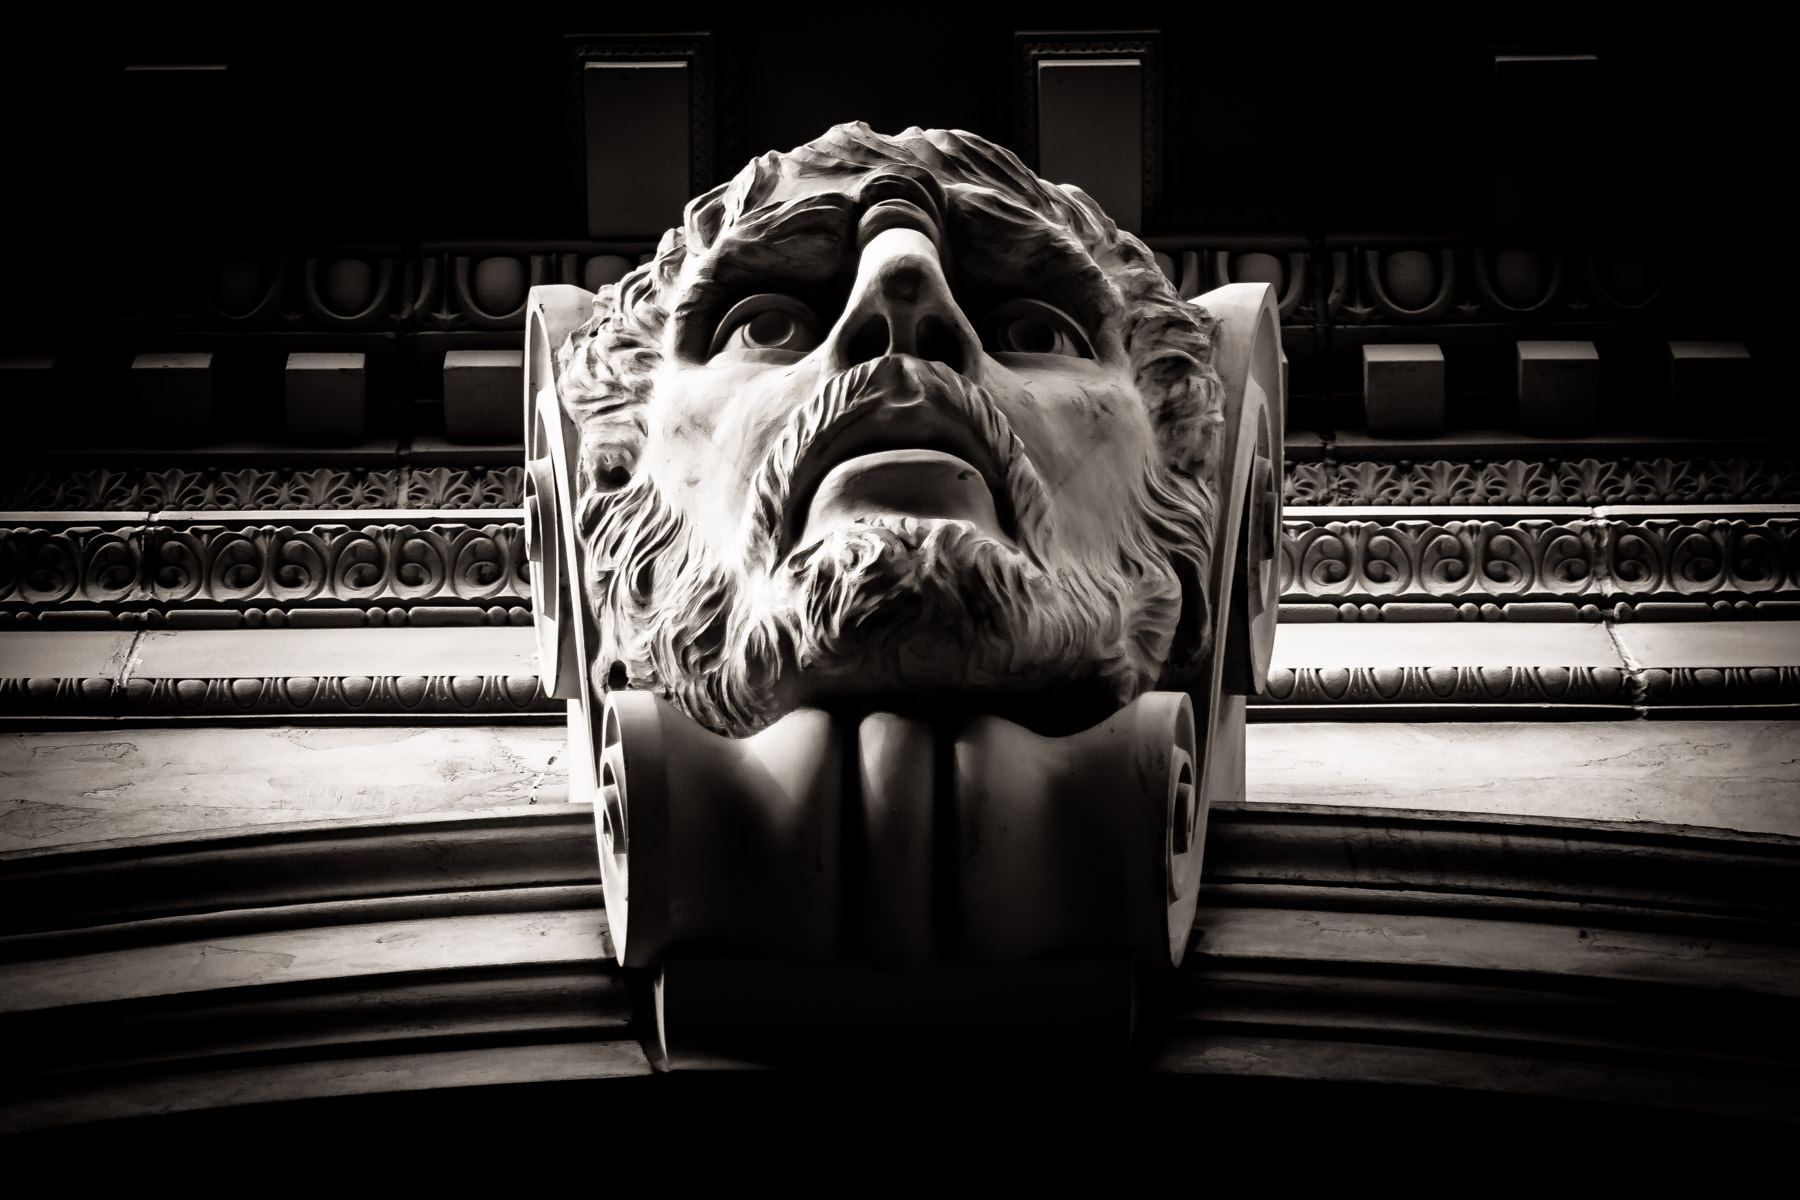 Decorative architectural detail from Caesars Palace, Las Vegas.